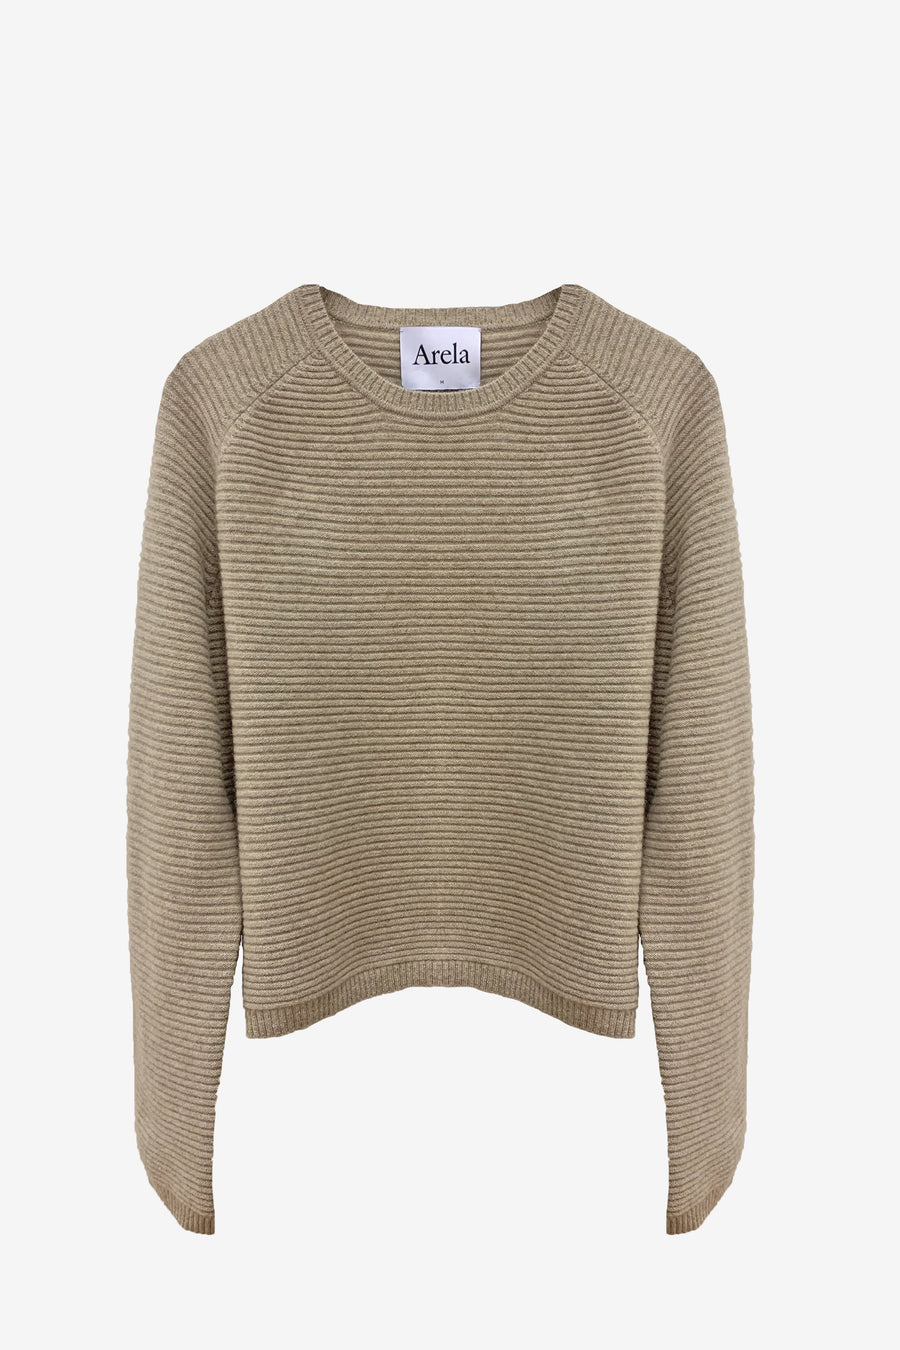 Noelle Sweater - Soft Brown